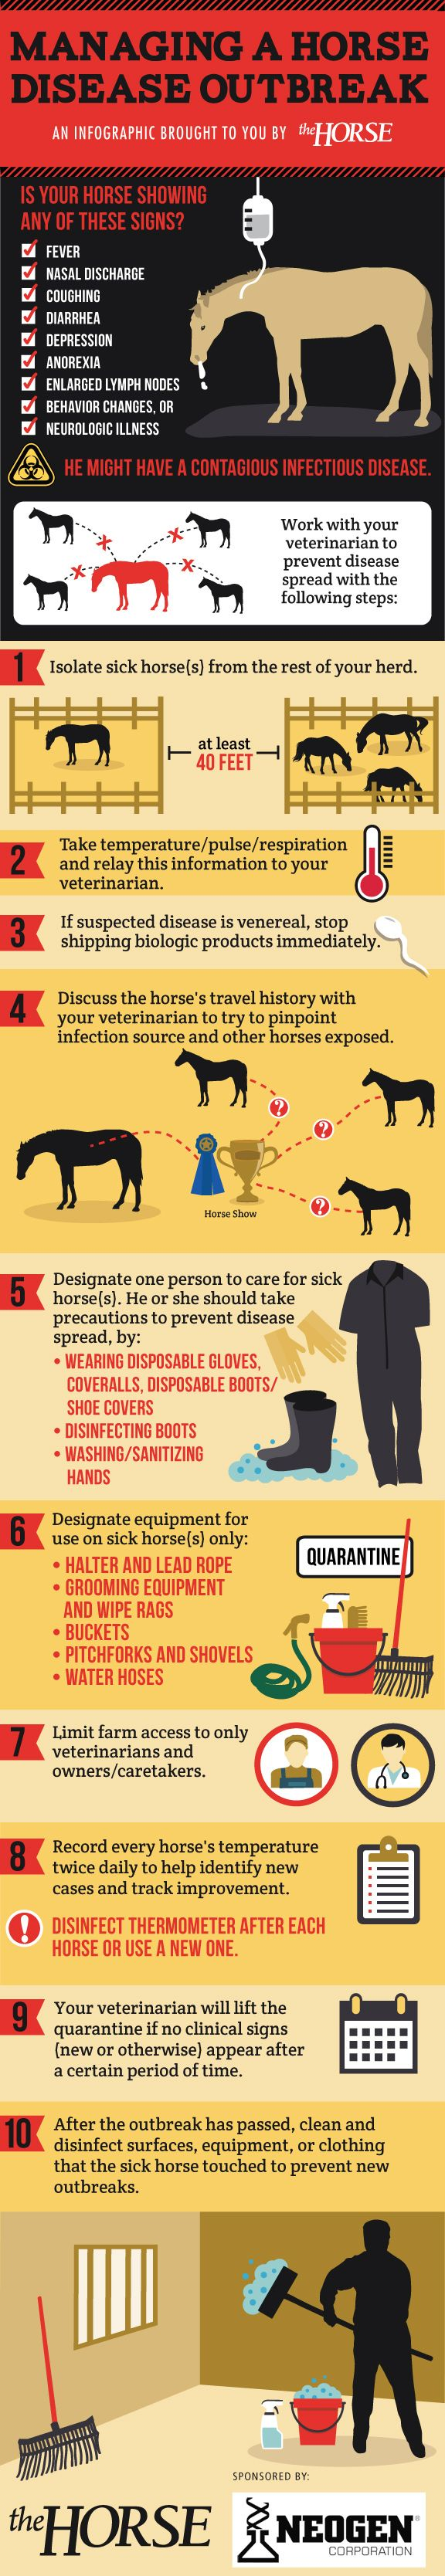 Crucial information to know and share if you ever have a disease outbreak in your barn--really, it could save lives! [INFOGRAPHIC] Managing a Horse Disease Outbreak - TheHorse.com | Is your horse showing clinical signs of an infectious disease? Here's how to care for your horse and protect others during an outbreak in our step-by-step visual guide, brought to you by TheHorse.com and Neogen. #infectiousdisease #biosecurity #horses #horsehealth #outbreak #infographic